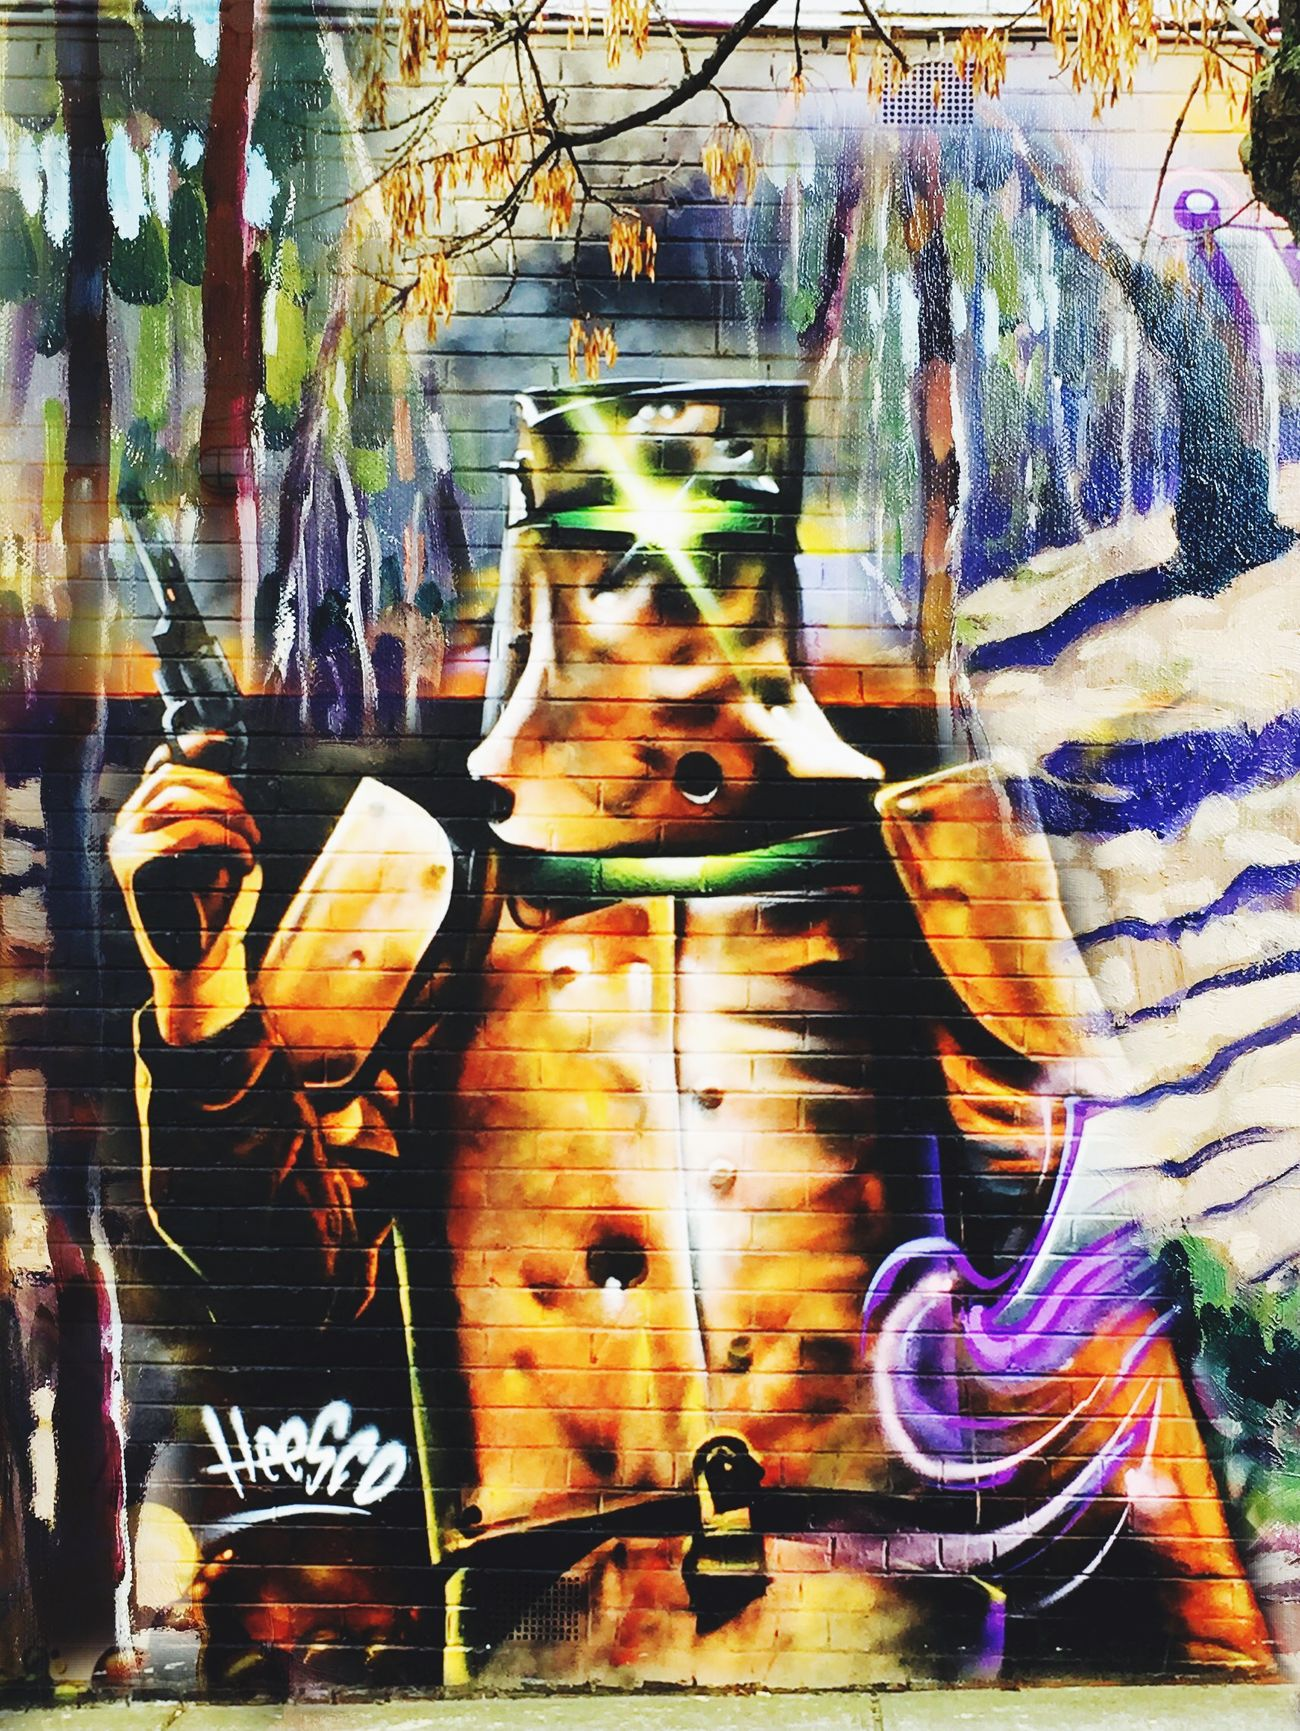 Photographic Approximation Ned Kelly Streetart/graffiti by Hesco..,